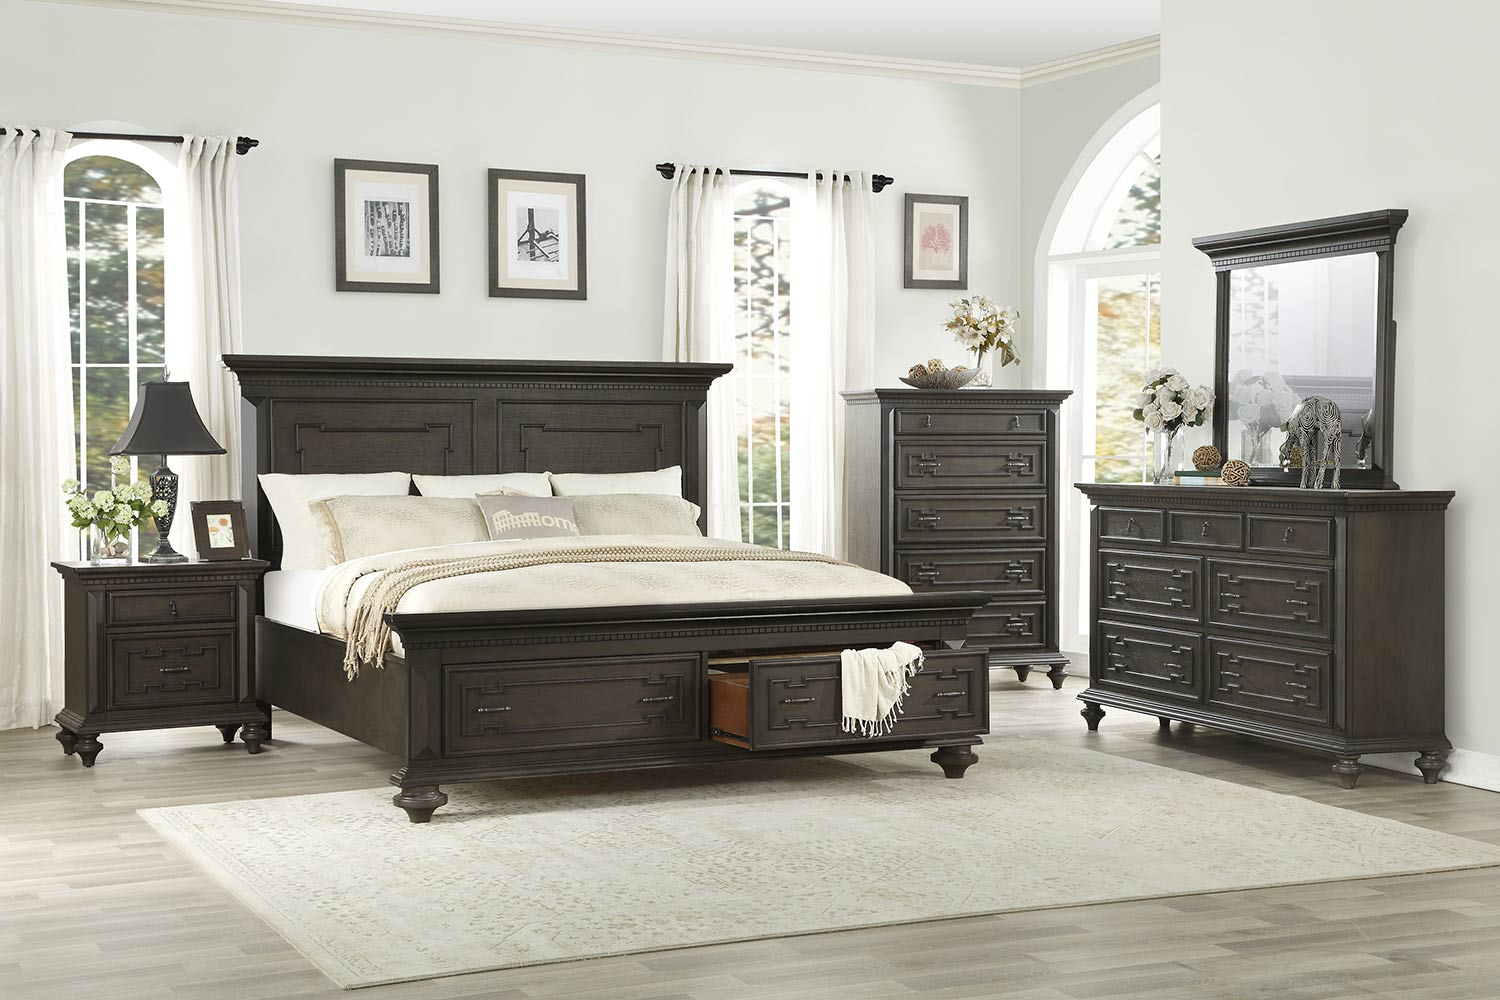 Homelegance Hillridge Platform Bedroom Set